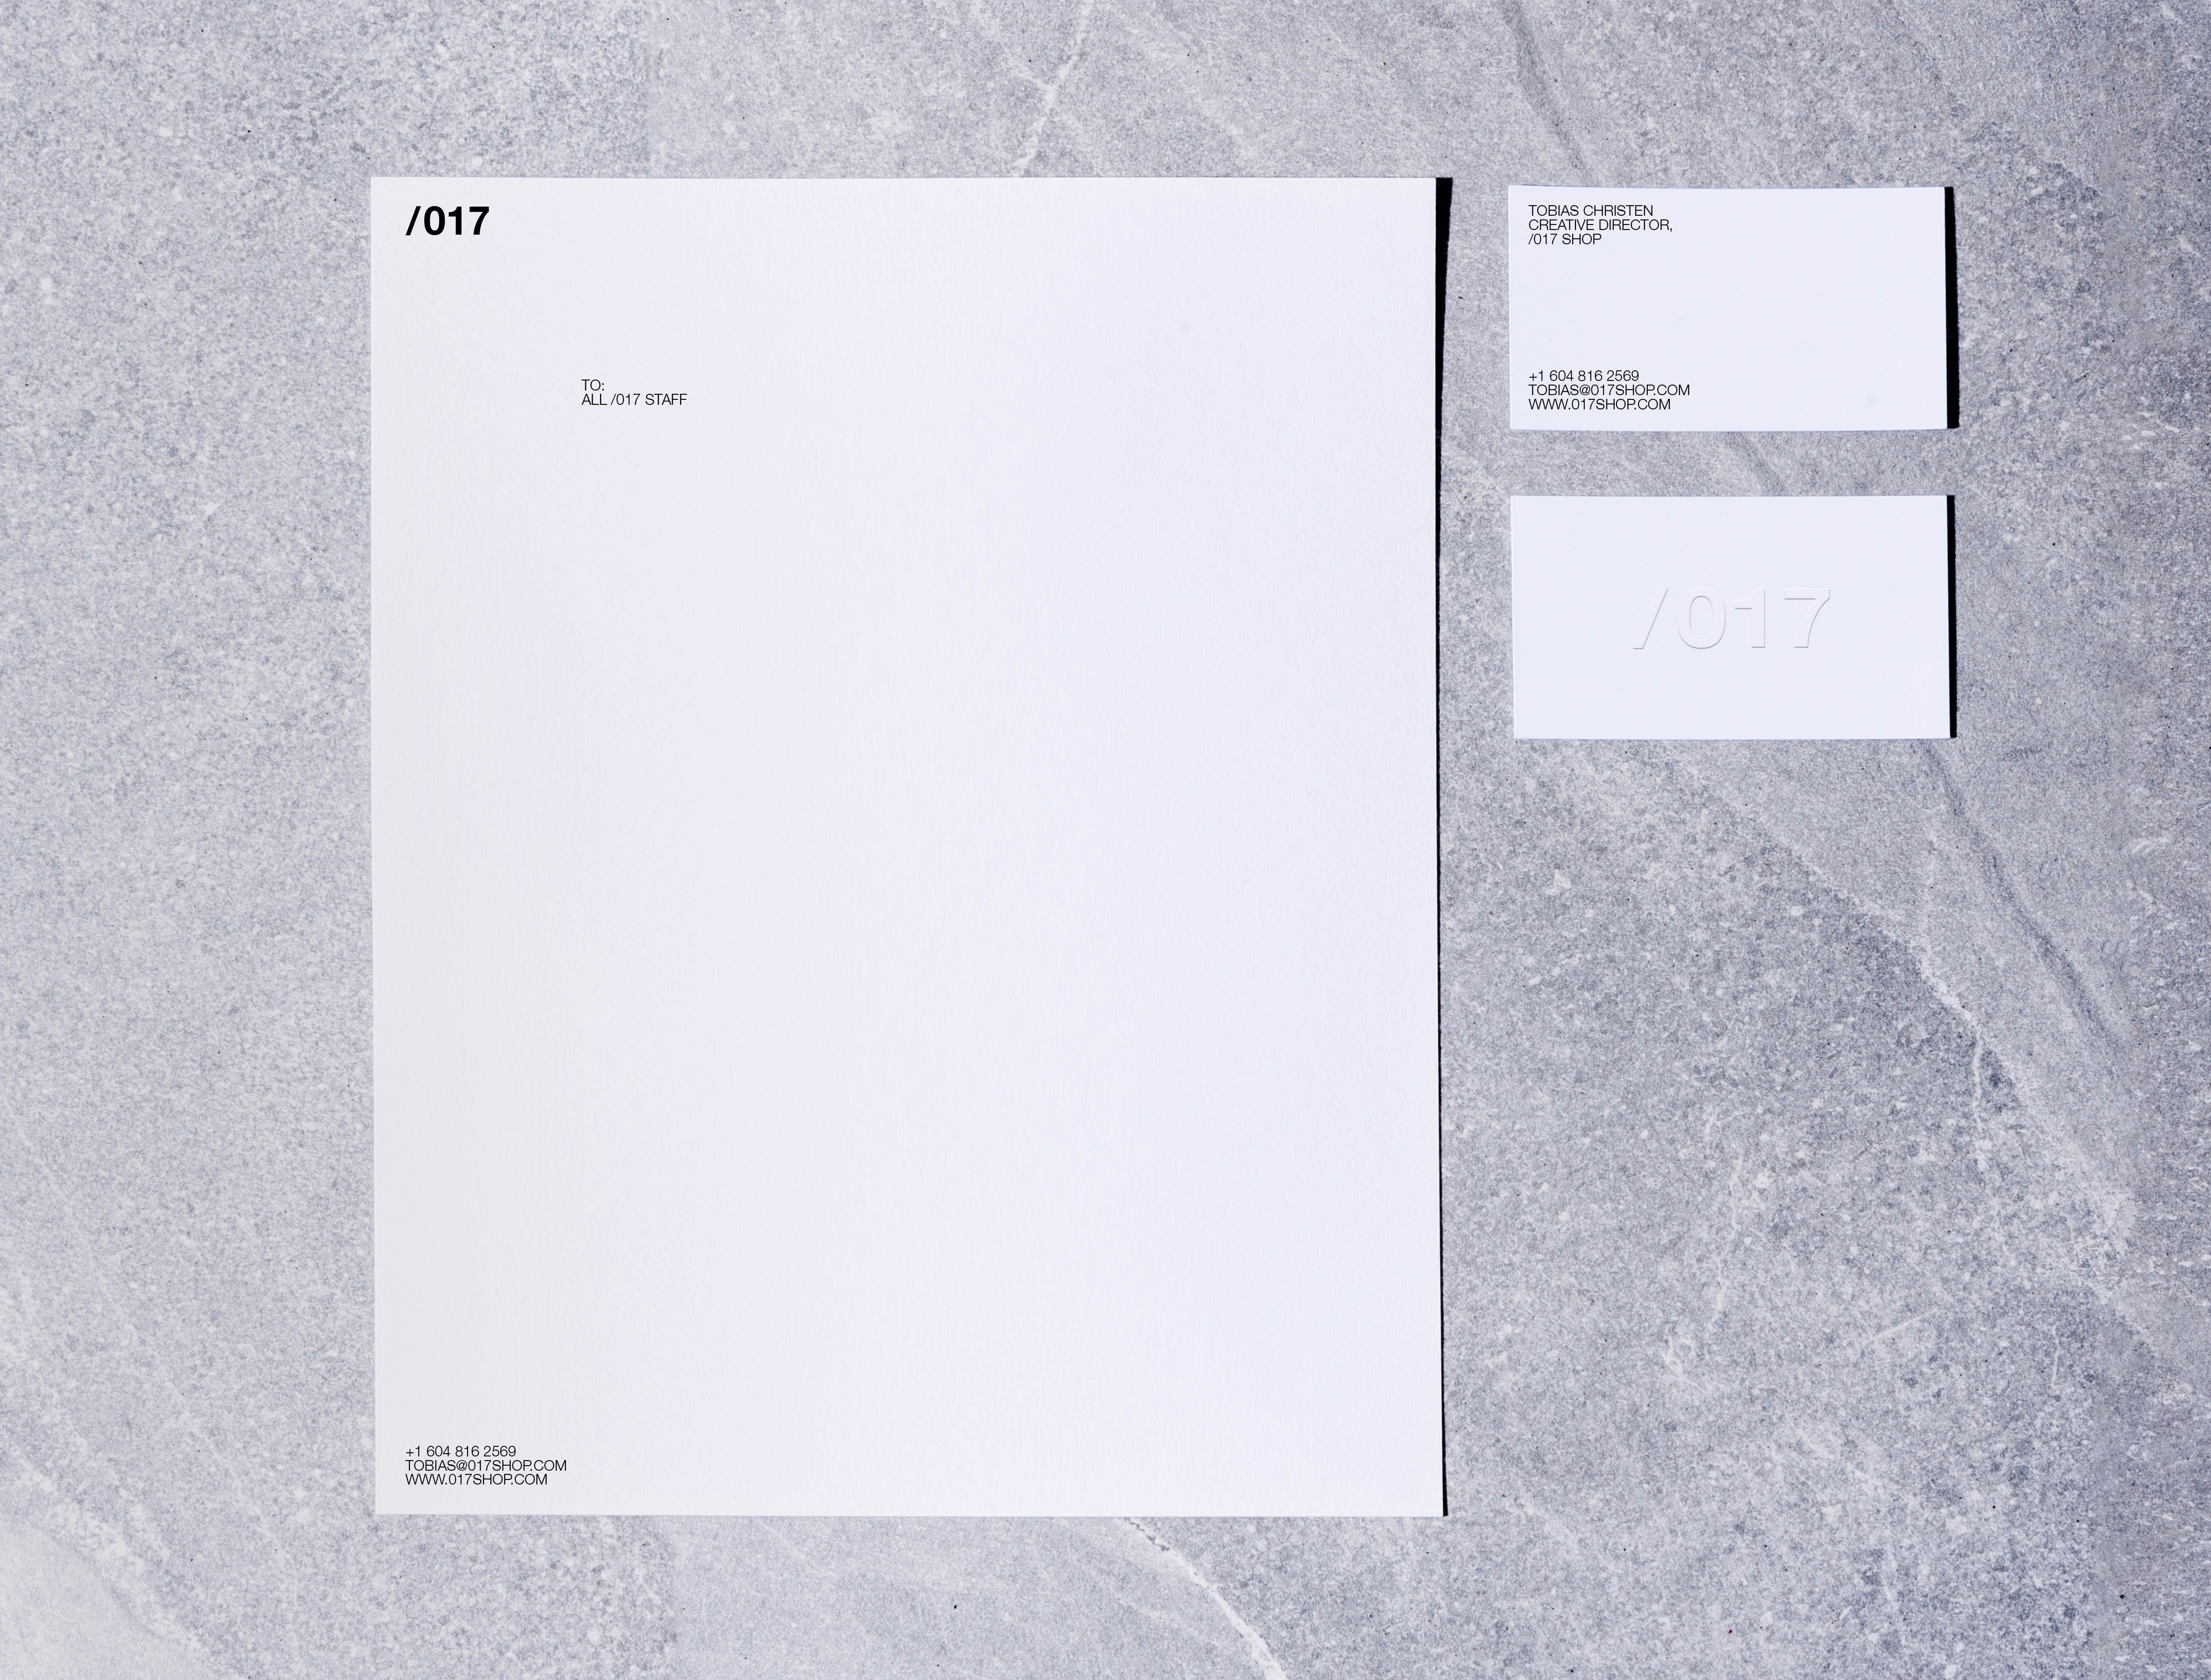 017 branding of letterhead and business card